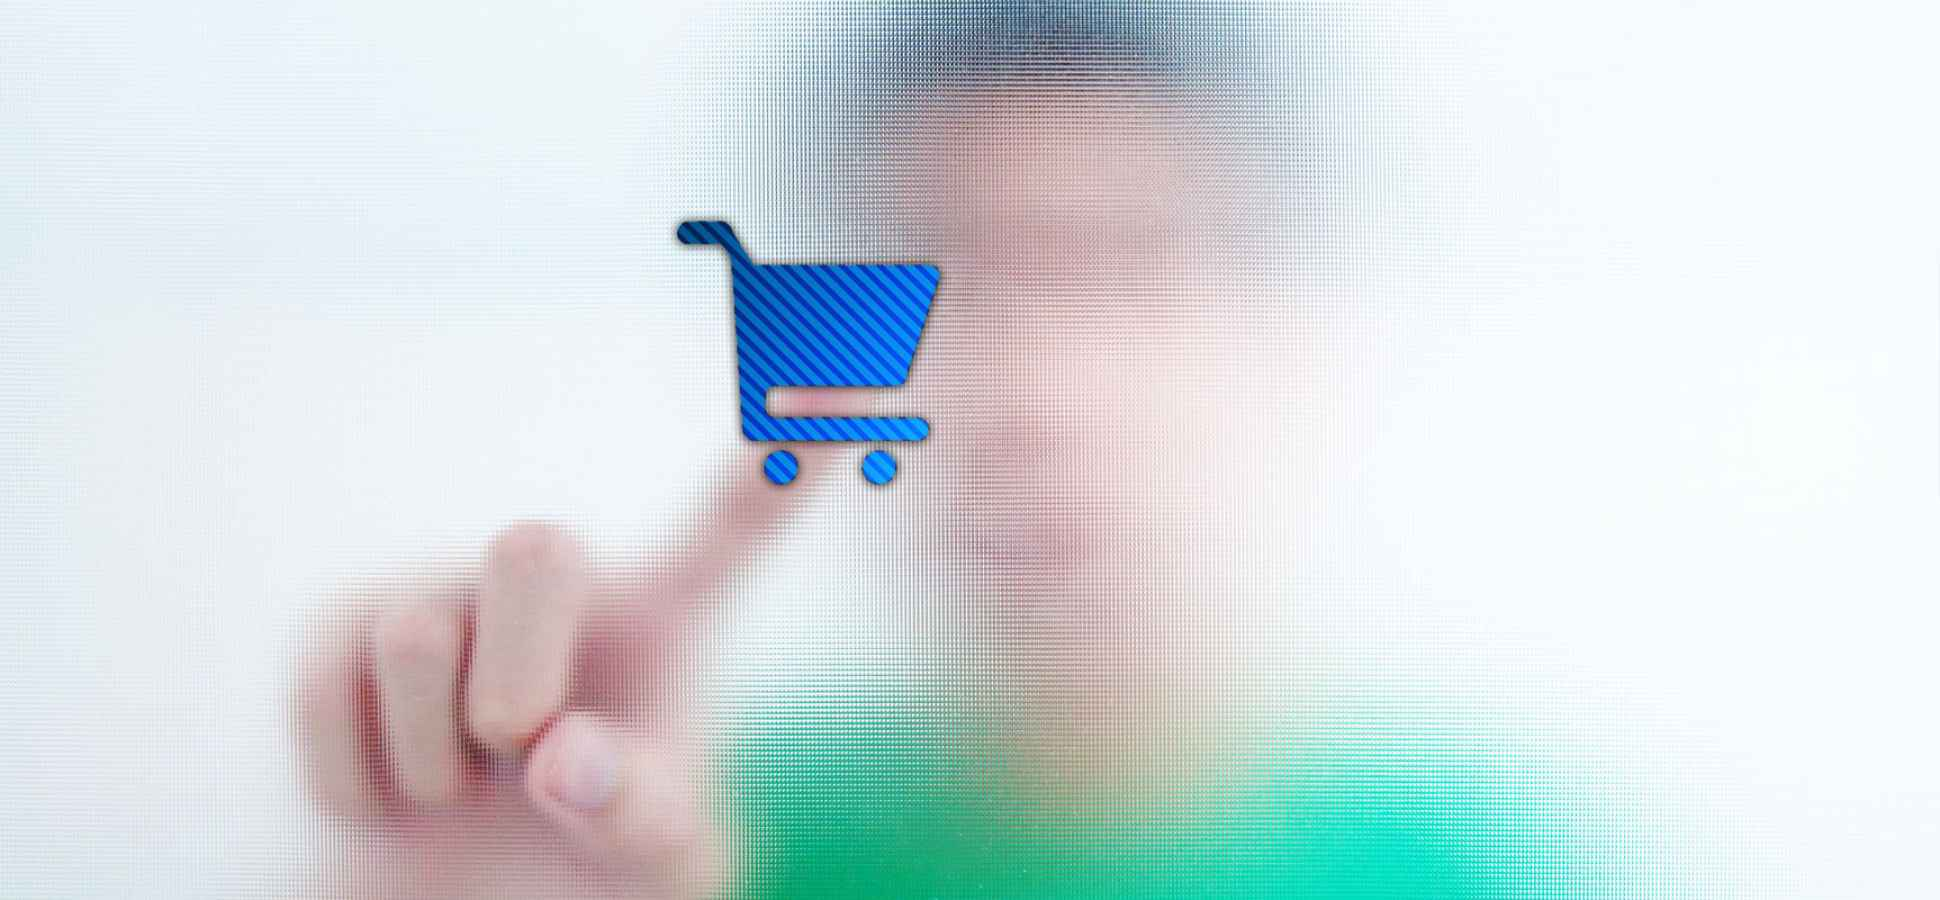 The Most Important Factor for Online Shoppers Isn't Price